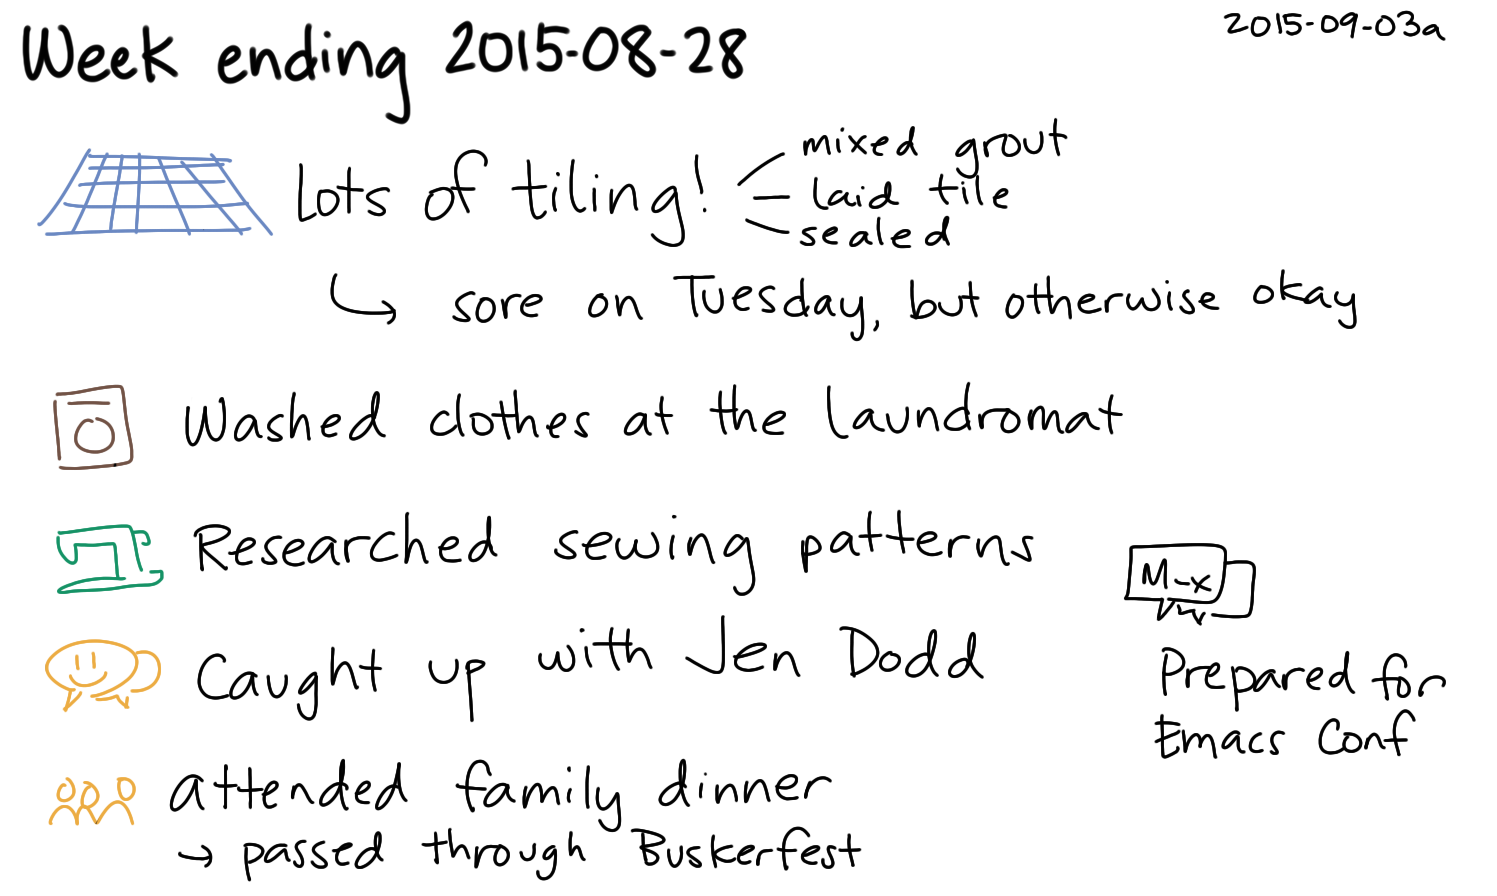 2015-09-03a Week ending 2015-08-28 -- index card #journal #weekly.png